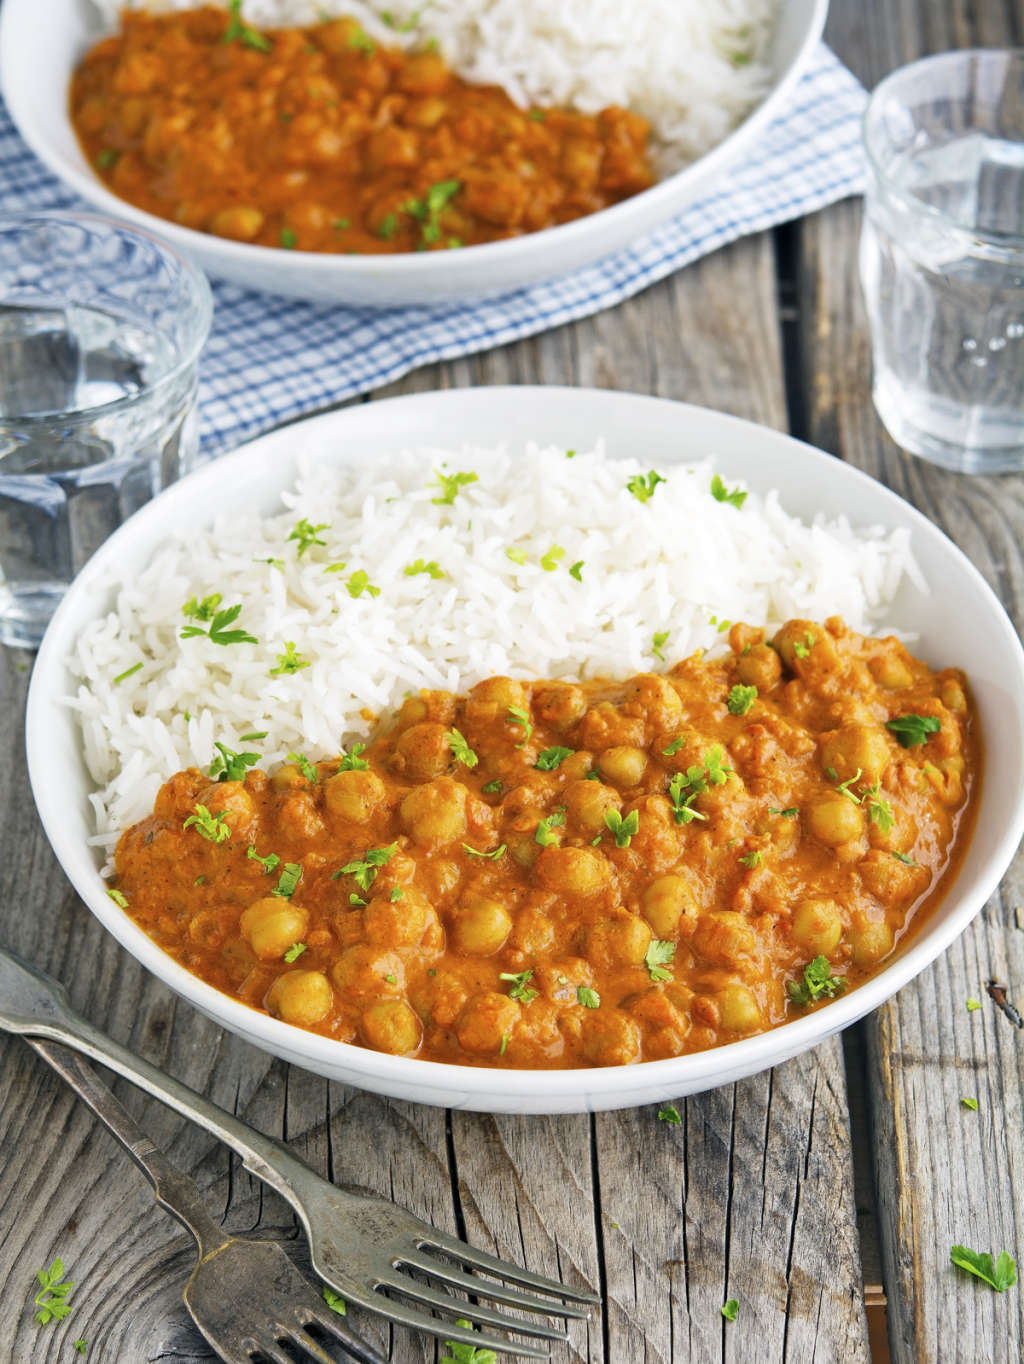 This Is the Most Popular Chickpea Recipe on Pinterest